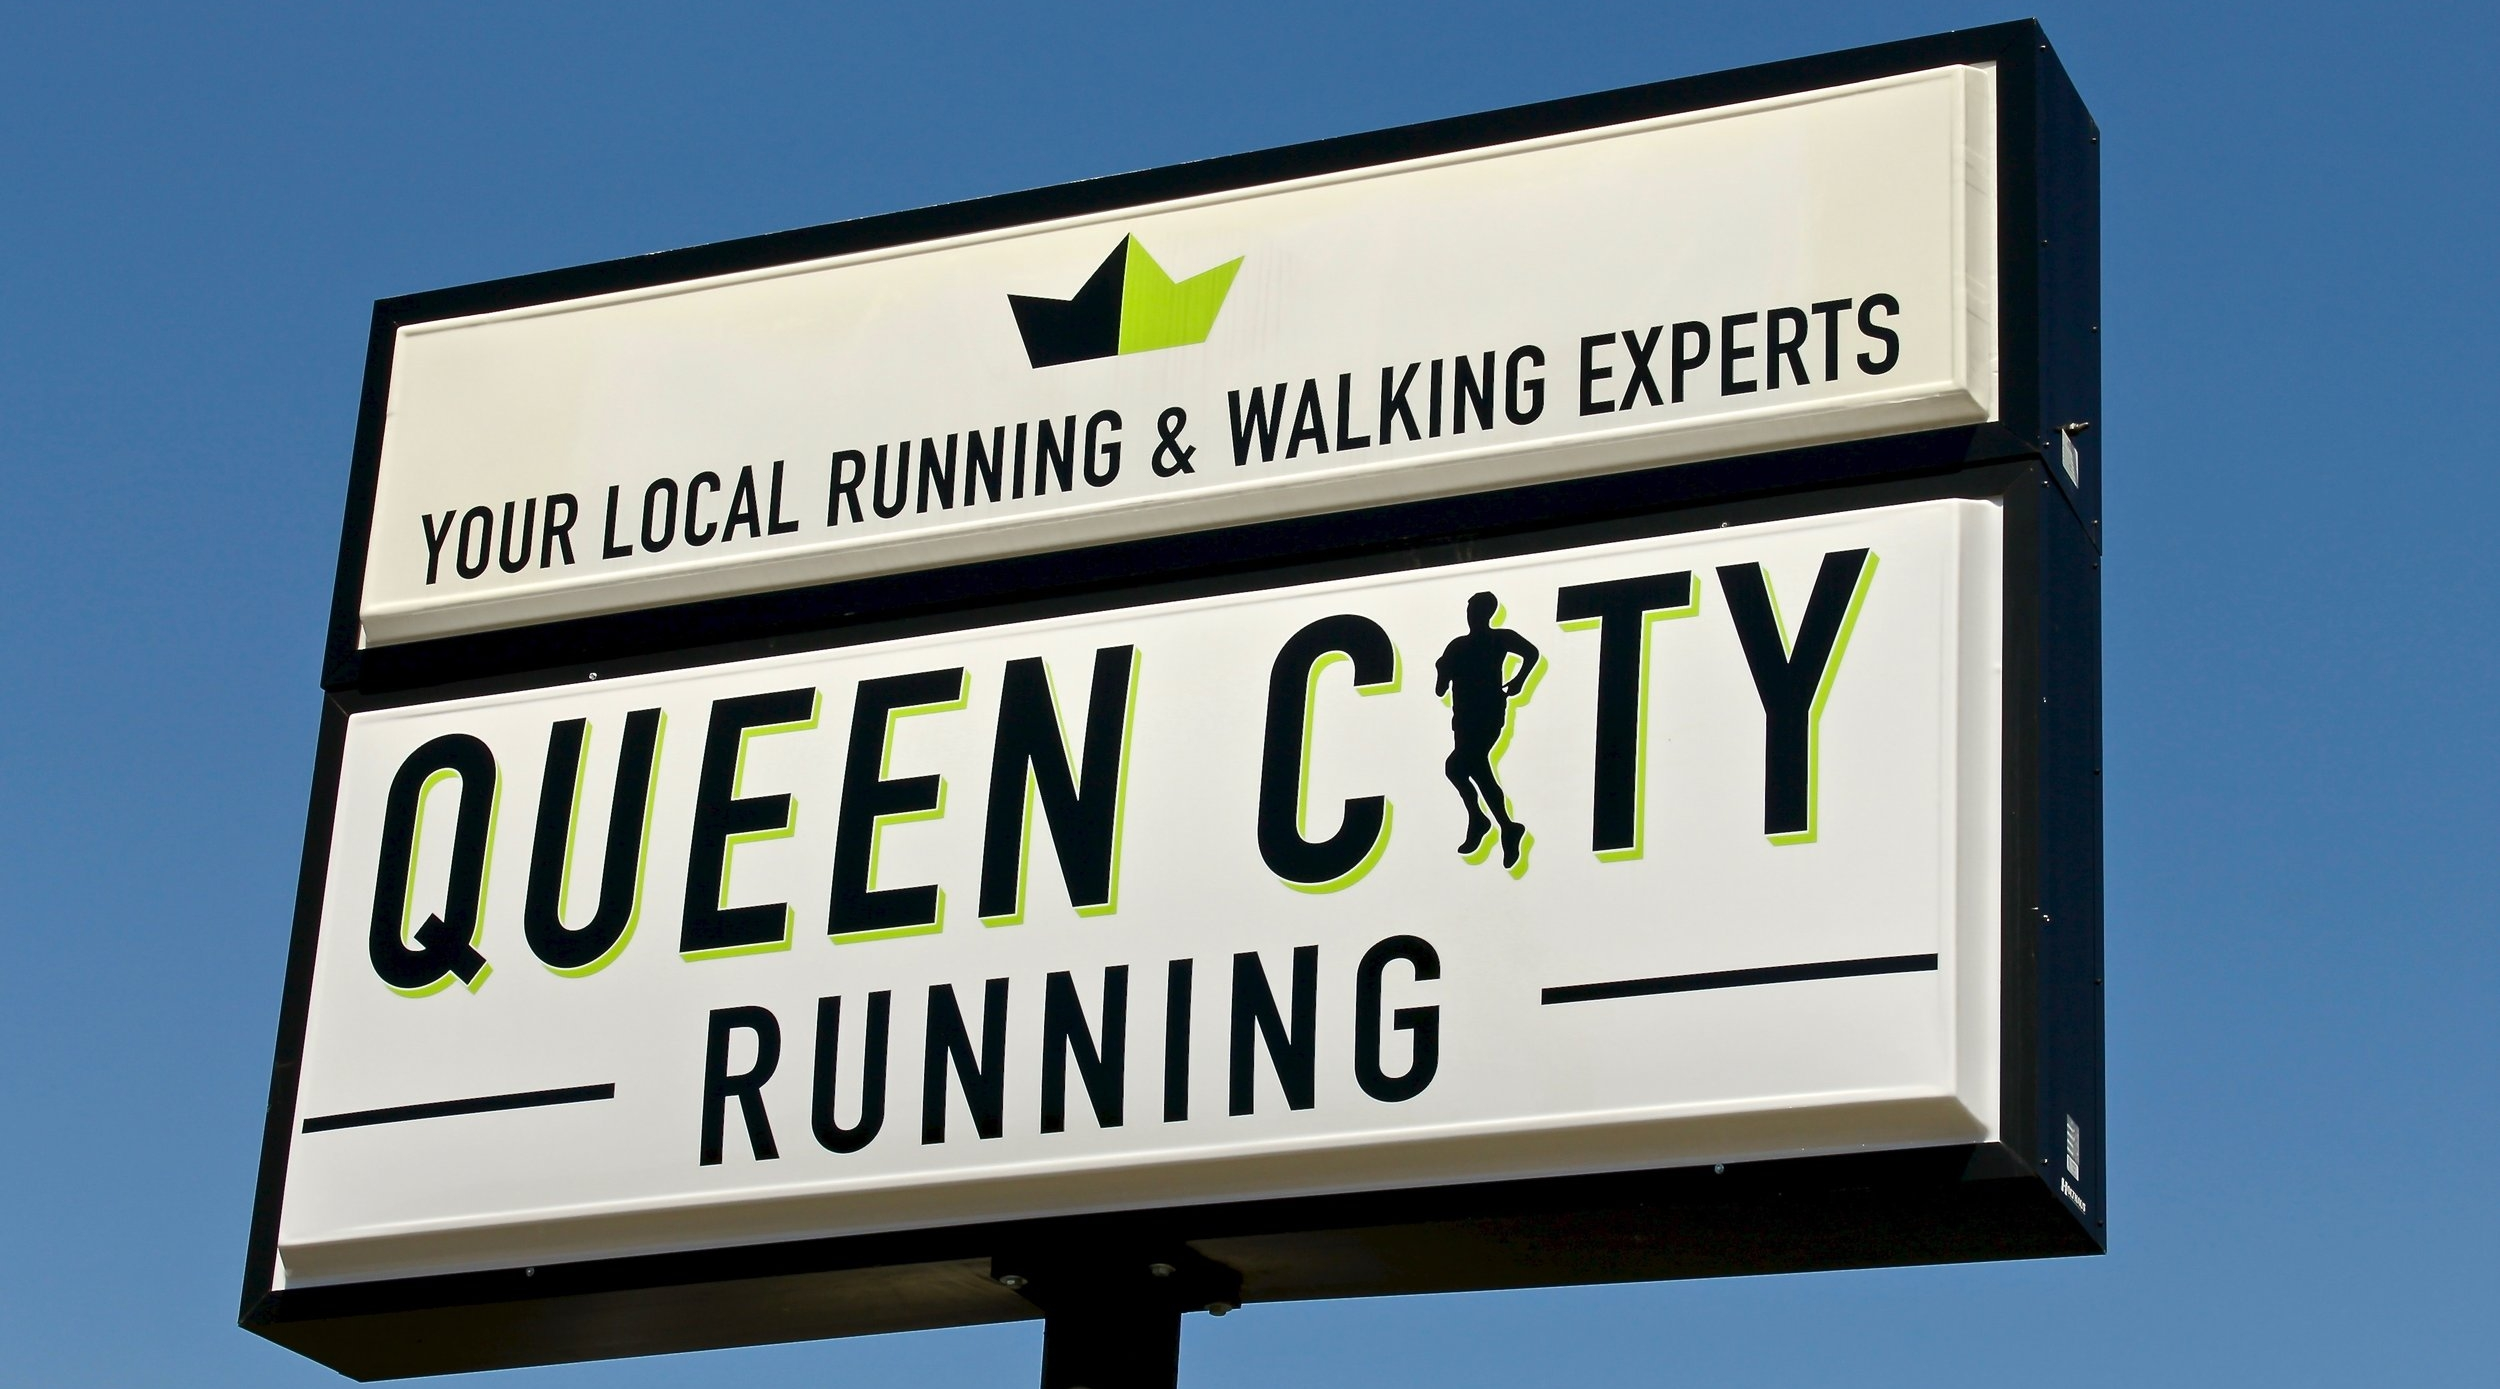 Our North store is located in West Chester, just north of Cincinnati.   8777 Cincinnati-Dayton Road West Chester, OH 45069 Phone: 513-942-5005 Email:  hello@queencityrunning.com    Directions   From the North   Take I-75 to Exit 21 (Cincinnati-Dayton), head south on Cincinnati-Dayton Road for 1/2 mile. QCR Running is on the right.   From the South   Take I-75 to Exit 19 (Union Centre Blvd), right on Union Centre Blvd to left on Cincinnati-Dayton Rd.  Queen City Running is 1 mile up on the left, 1/4 mile after crossing Lesourdesville-WC Rd.   From the East or West   Queen City Running North is located on Cincinnati-Dayton Rd. one mile north of Union Centre Blvd.